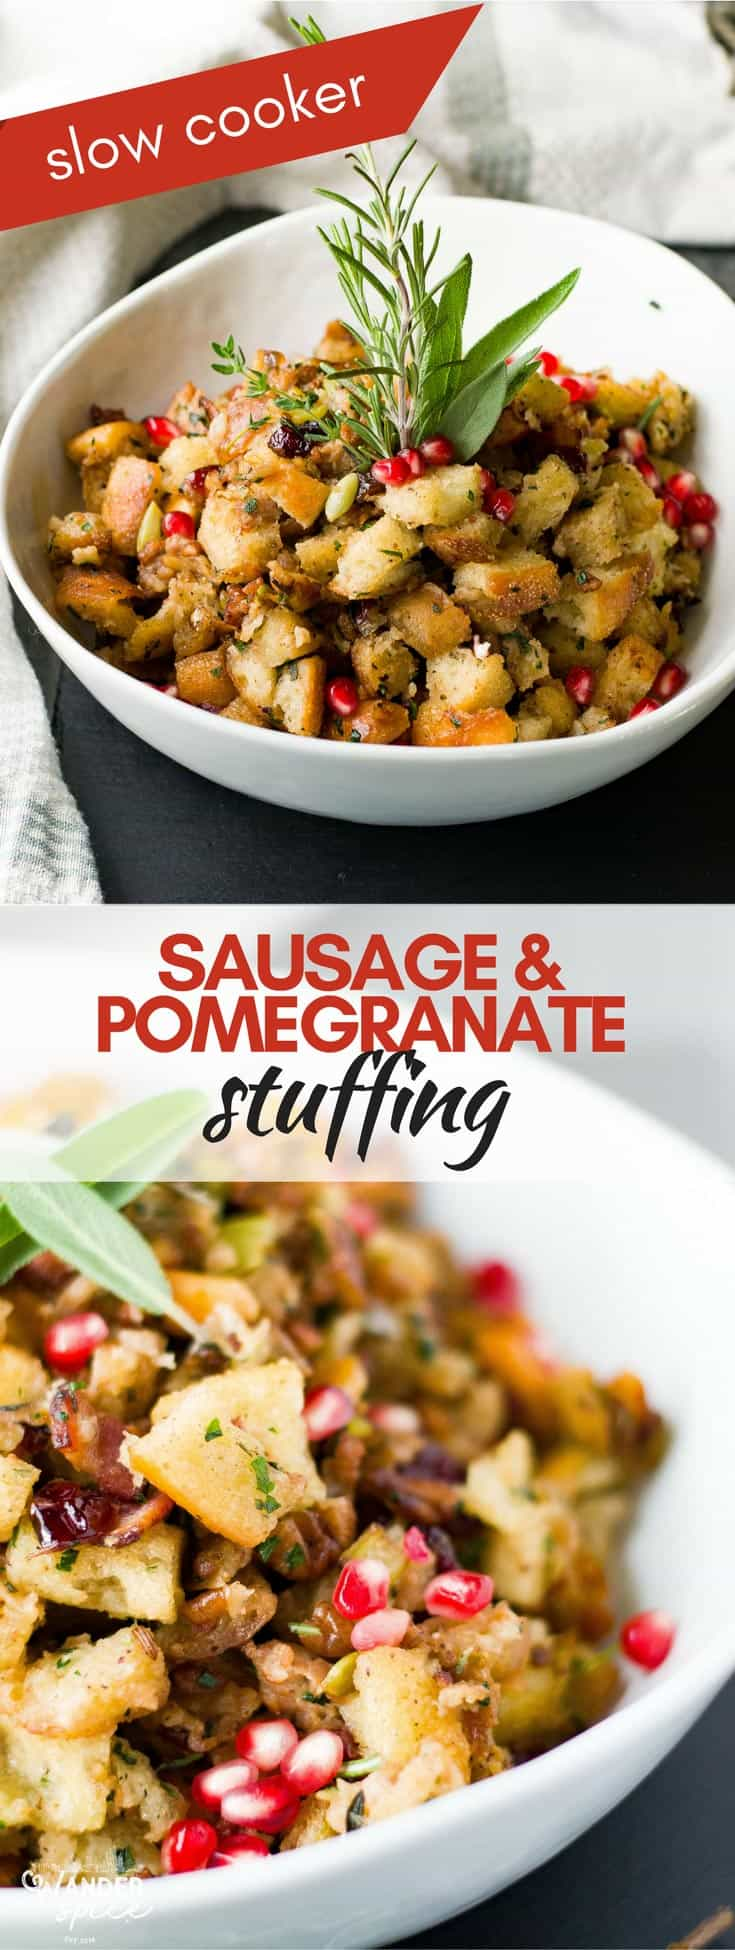 Sausage Stuffing Recipe - Slow Cooker - Crisp Bacon and Pomegranate seeds